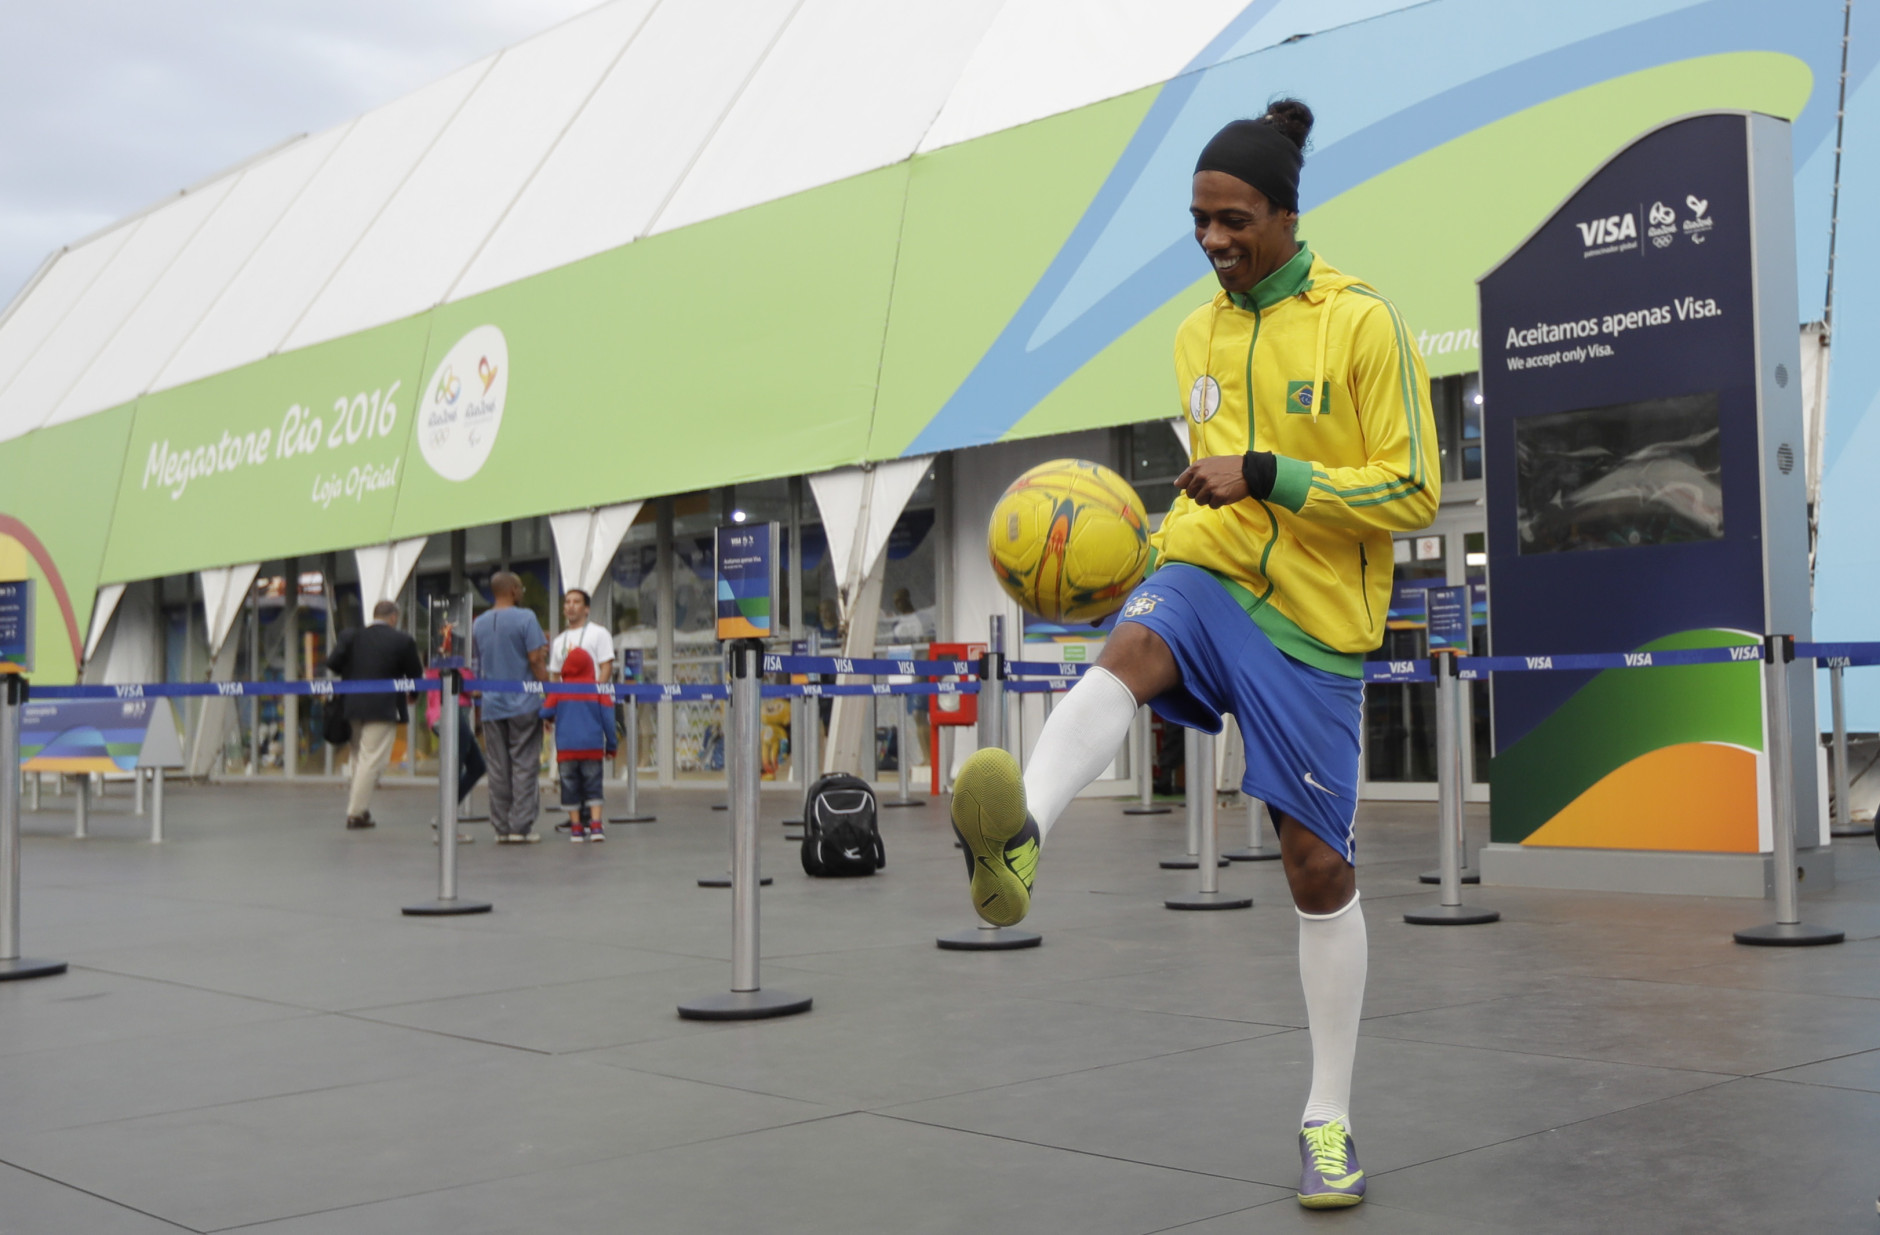 Robinson Oliveira, who works as a professional lookalike of the Brazilian soccer star Ronaldinho kicks a ball in front of a souvenir store for the 2016 Summer Olympics along Copacabana beach in Rio de Janeiro, Brazil, Wednesday, Aug. 3, 2016. The Olympics are scheduled to open Aug. 5. (AP Photo/Gregory Bull)